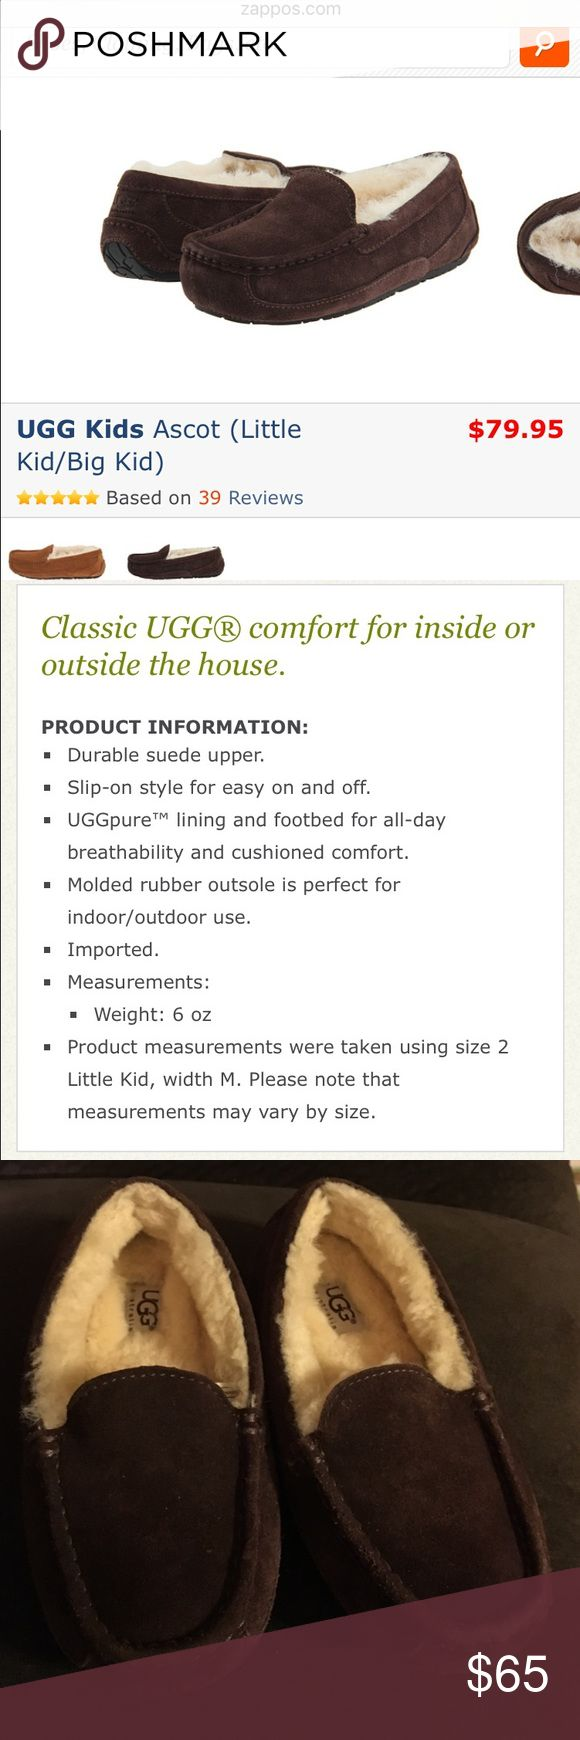 Kids Ugg slippers Excellent condition! My son only wore them twice and only indoors.. can be for either boys or girls. The first 2 pictures are from zappos.com showing the retail price and the details of the slipper. The last 2 pictures are of the actual slippers you will receive UGG Shoes Slippers